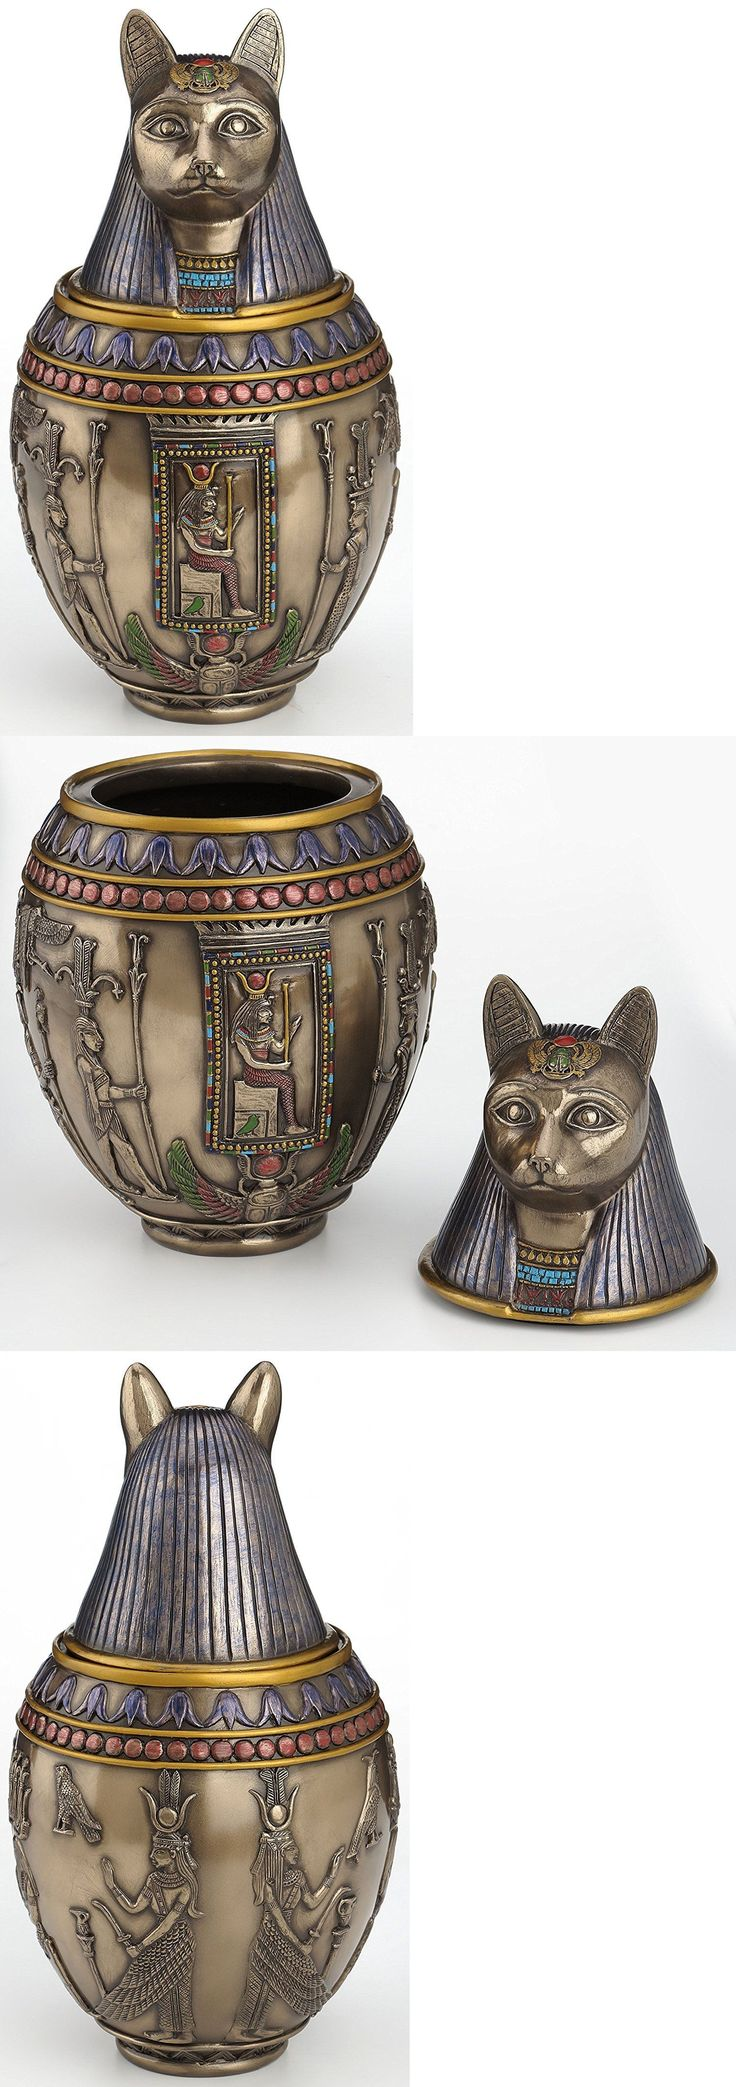 Pet Memorials and Urns 116391: Rare Egyptian Bastet Bronze Canopic Jar Cat Burial Urn - We Ship Worldwide BUY IT NOW ONLY: $53.44